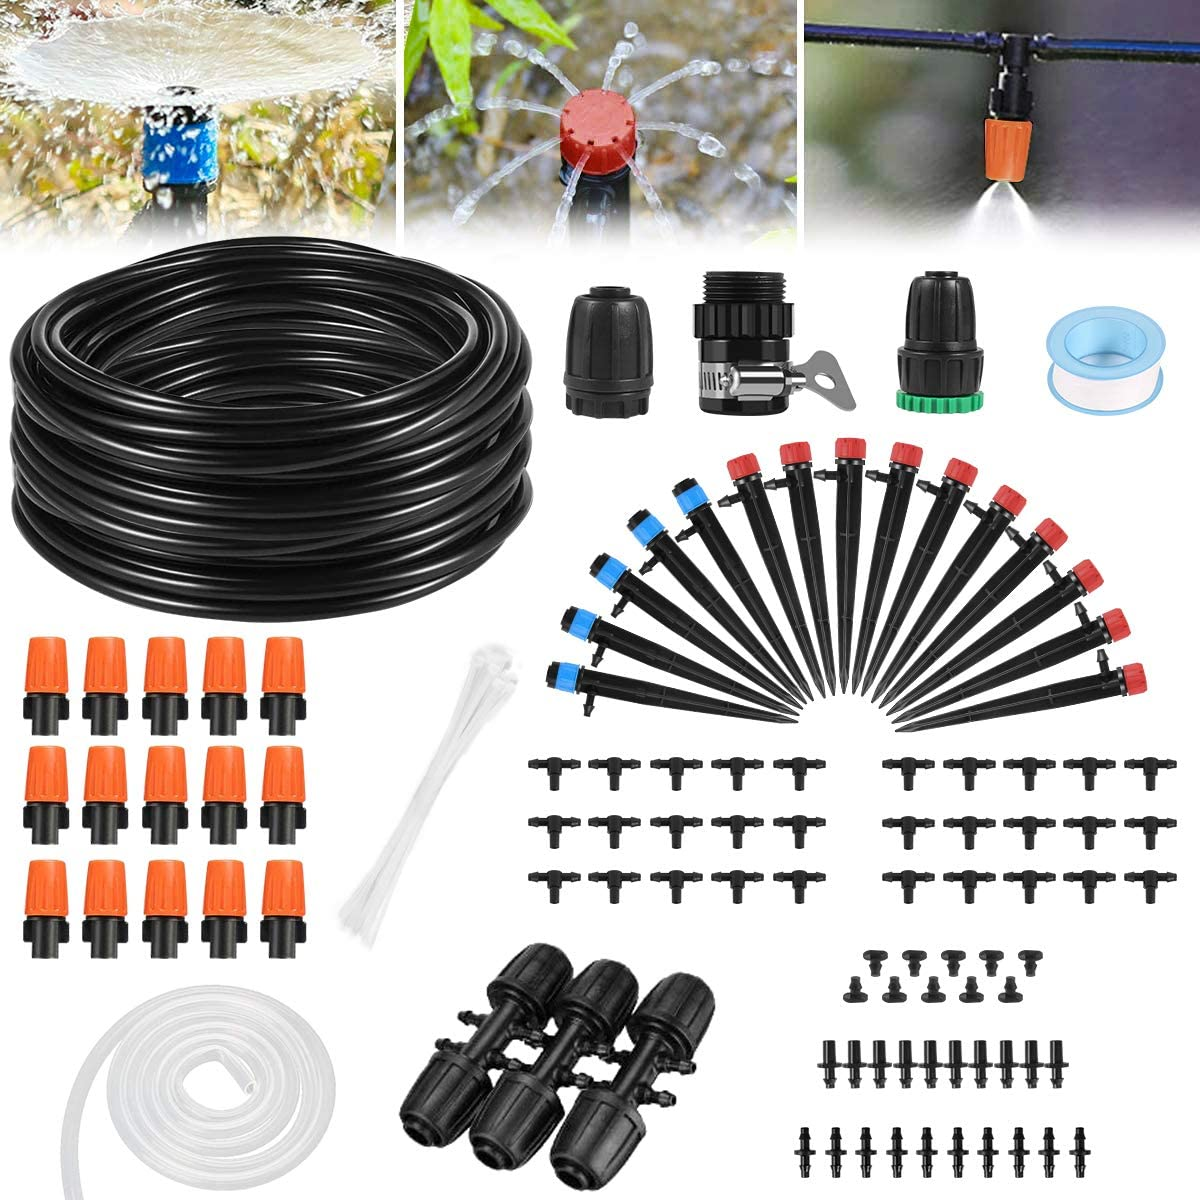 HAYIFTY Drip Irrigation Kit